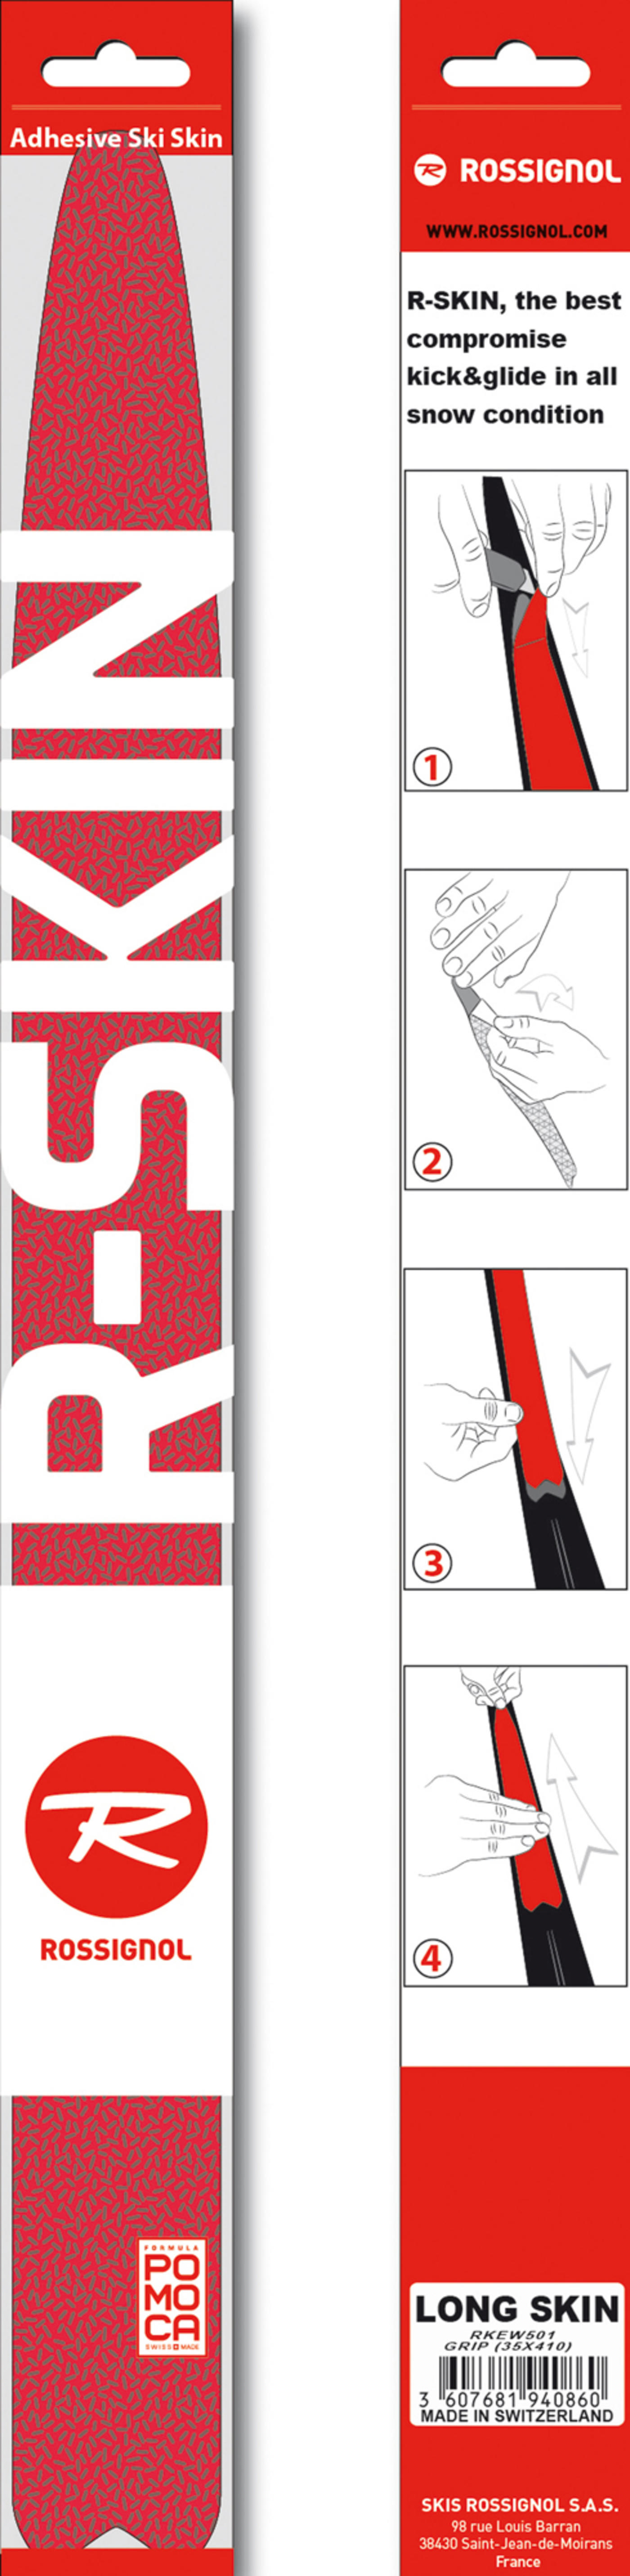 ROSSIGNOL L2 LONG SKIN GRIP